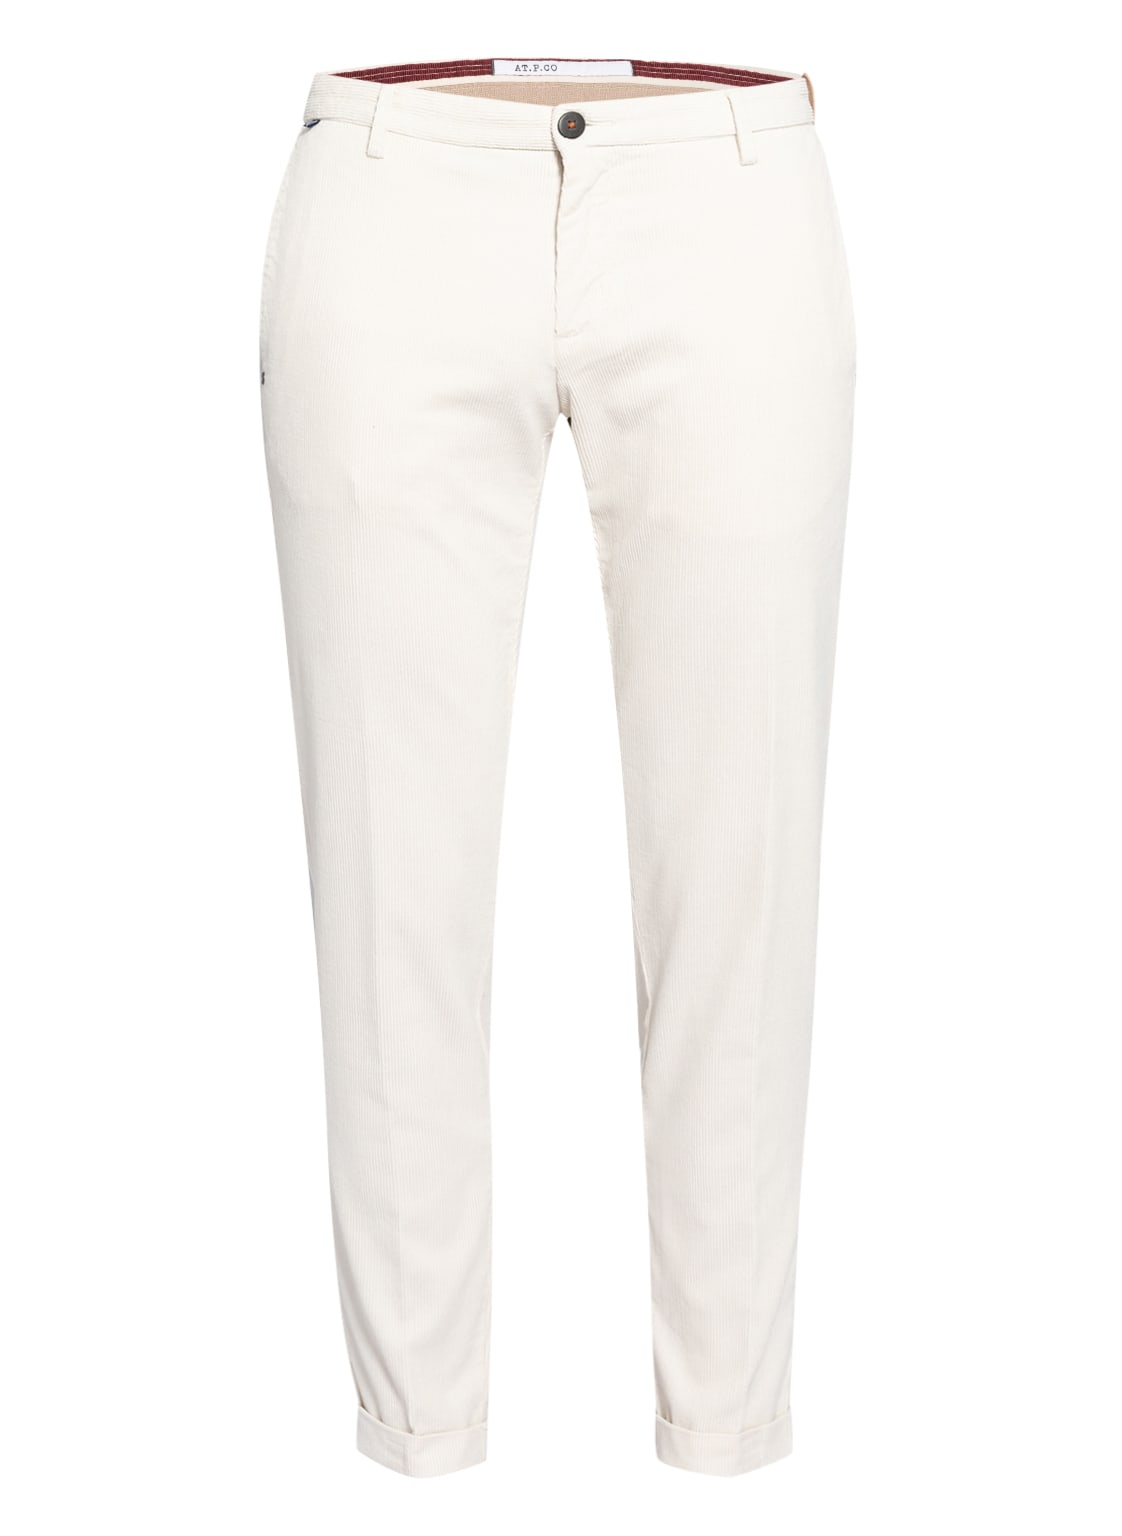 Image of At.P.Co Cordhose Scott Extra Slim Fit weiss